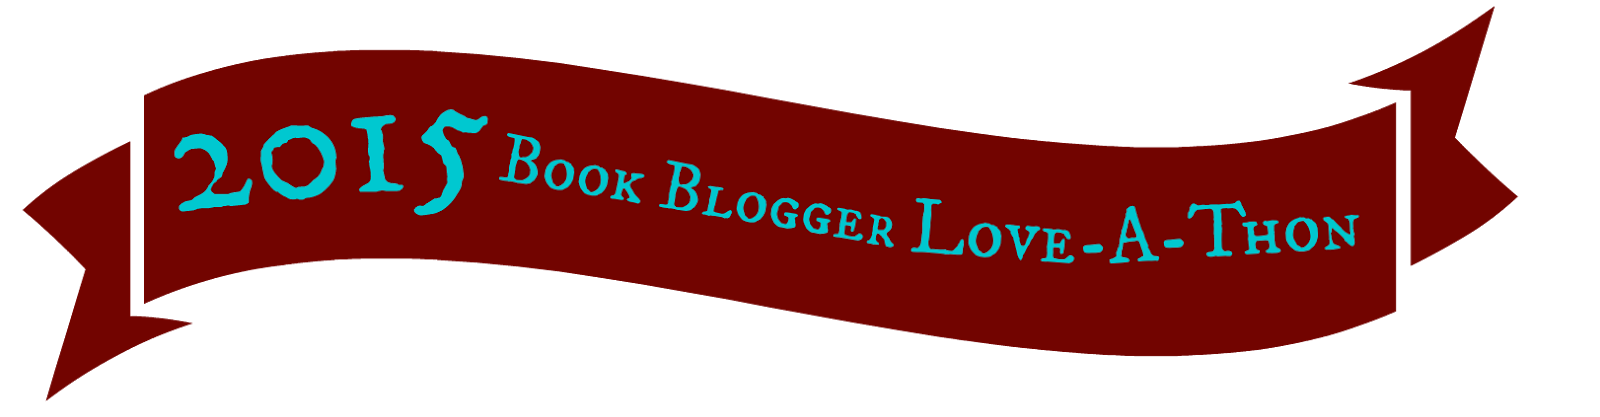 2015 Book Blogger Love-a-Thon: Snapshots